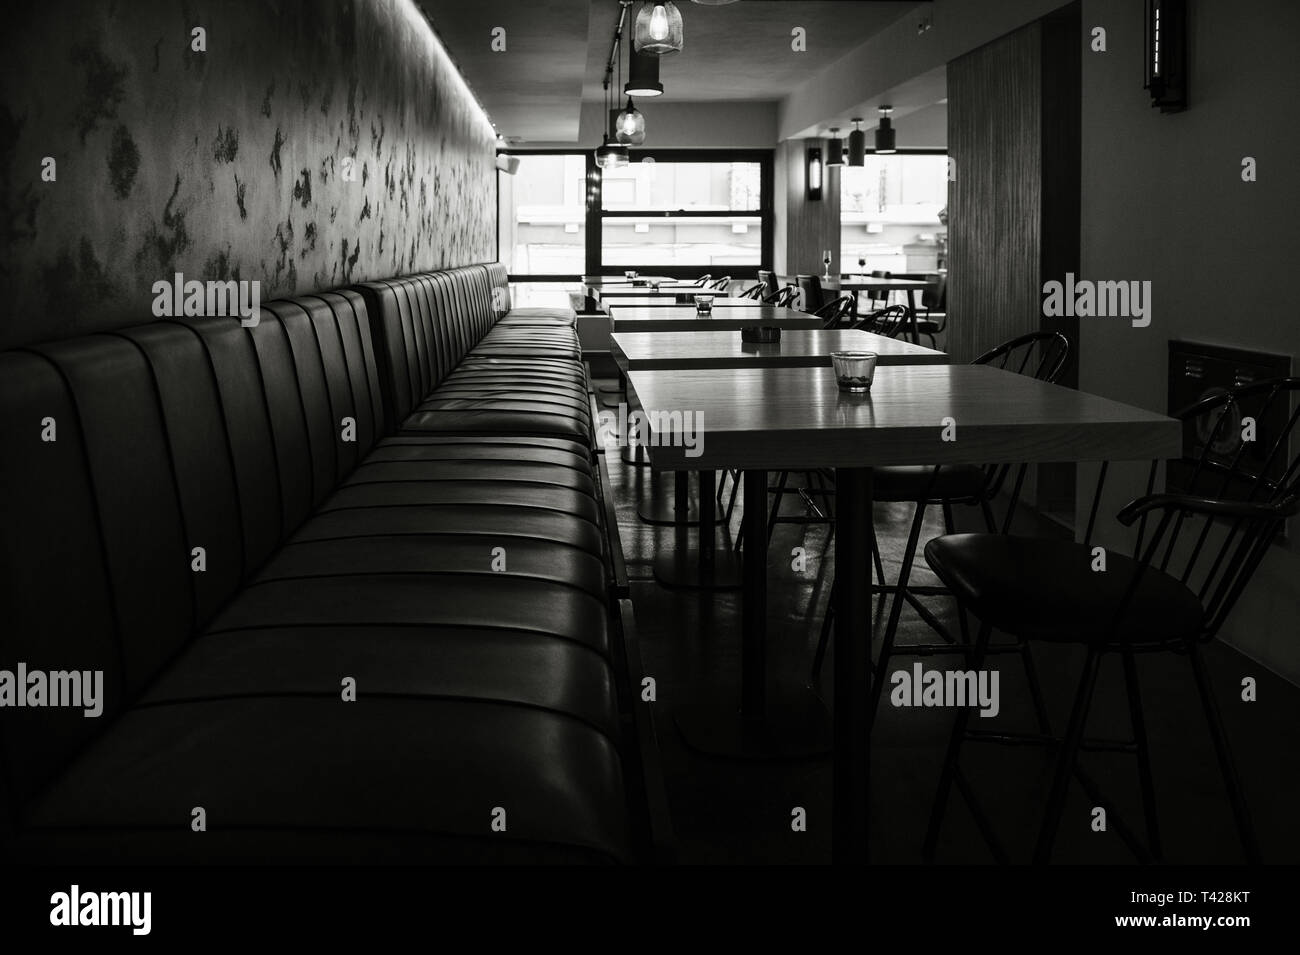 Modern Interior Restaurant Black White High Resolution Stock Photography And Images Alamy